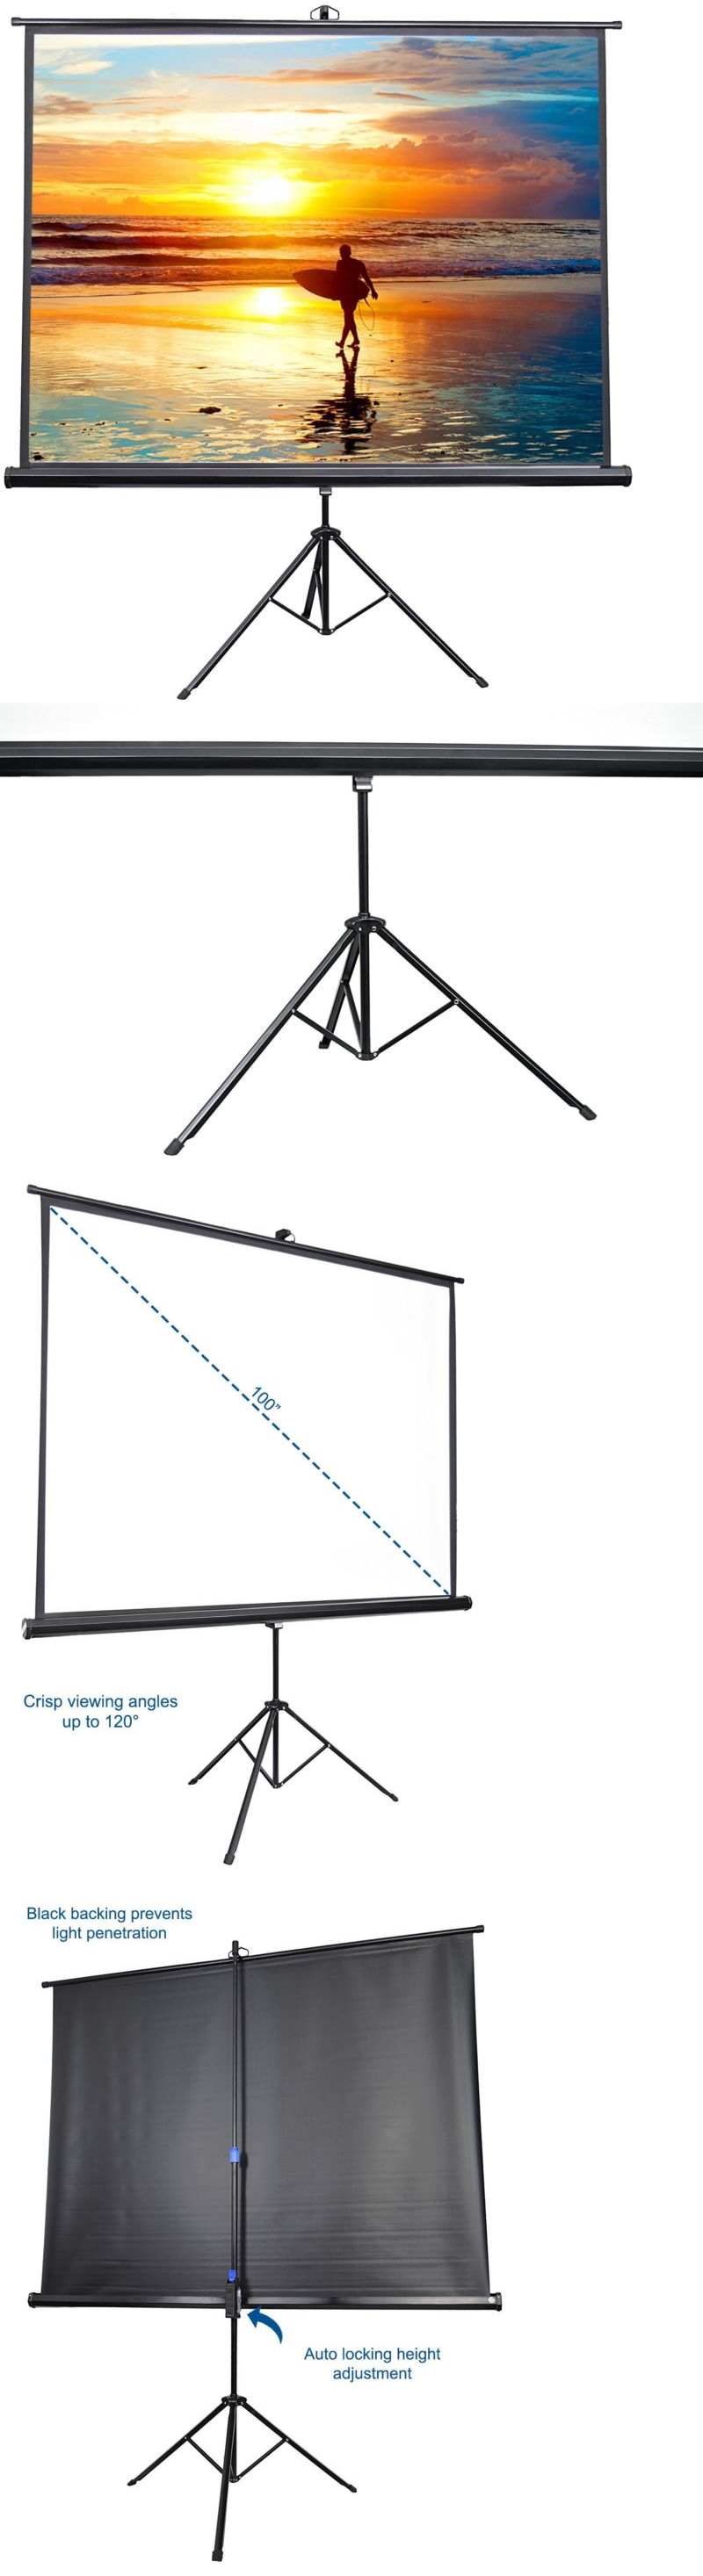 Projection Screens and Material: 100 Portable Outdoor Movie Screen ...